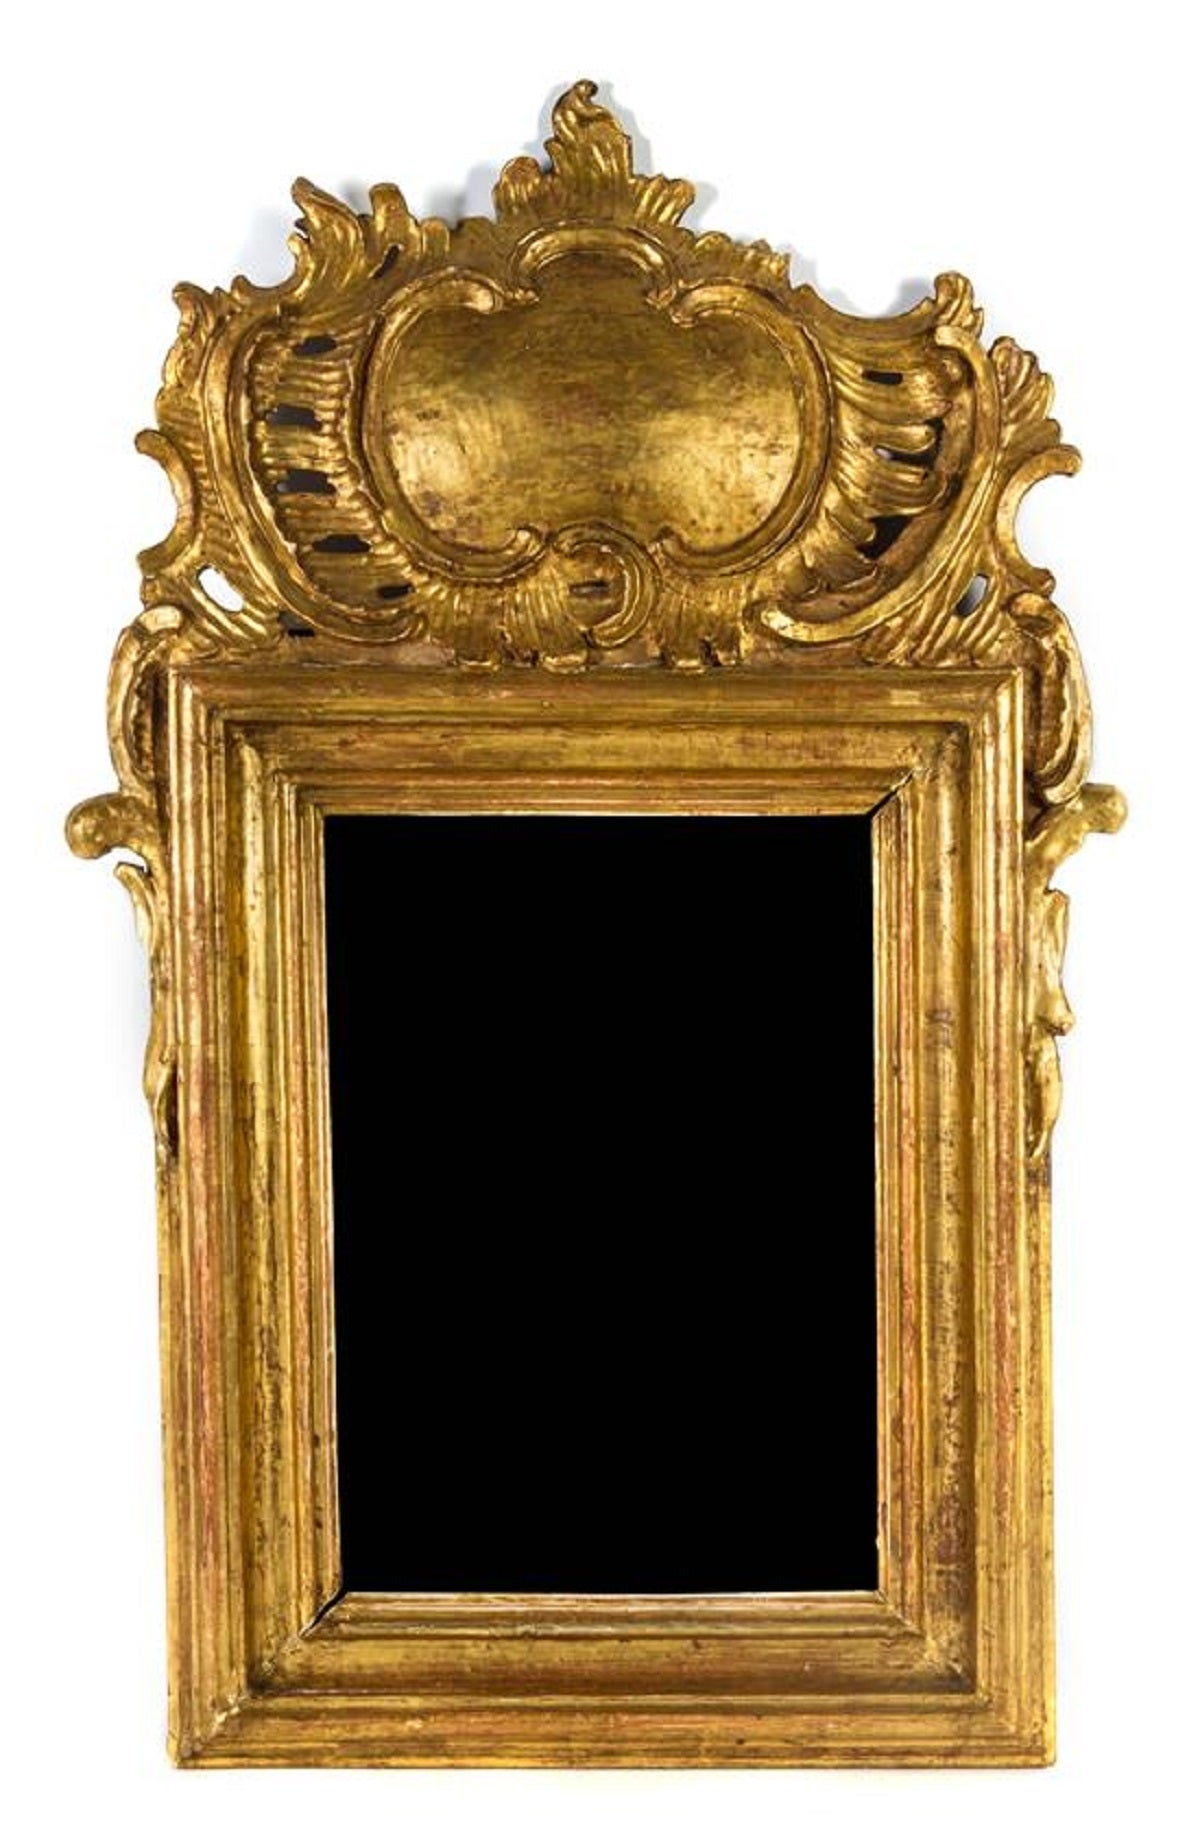 Louis XV style giltwood mirror having a rectangular mirror plate within a conforming molded frame surmounted by a cartouche and a foliate scroll crest, 20th Century